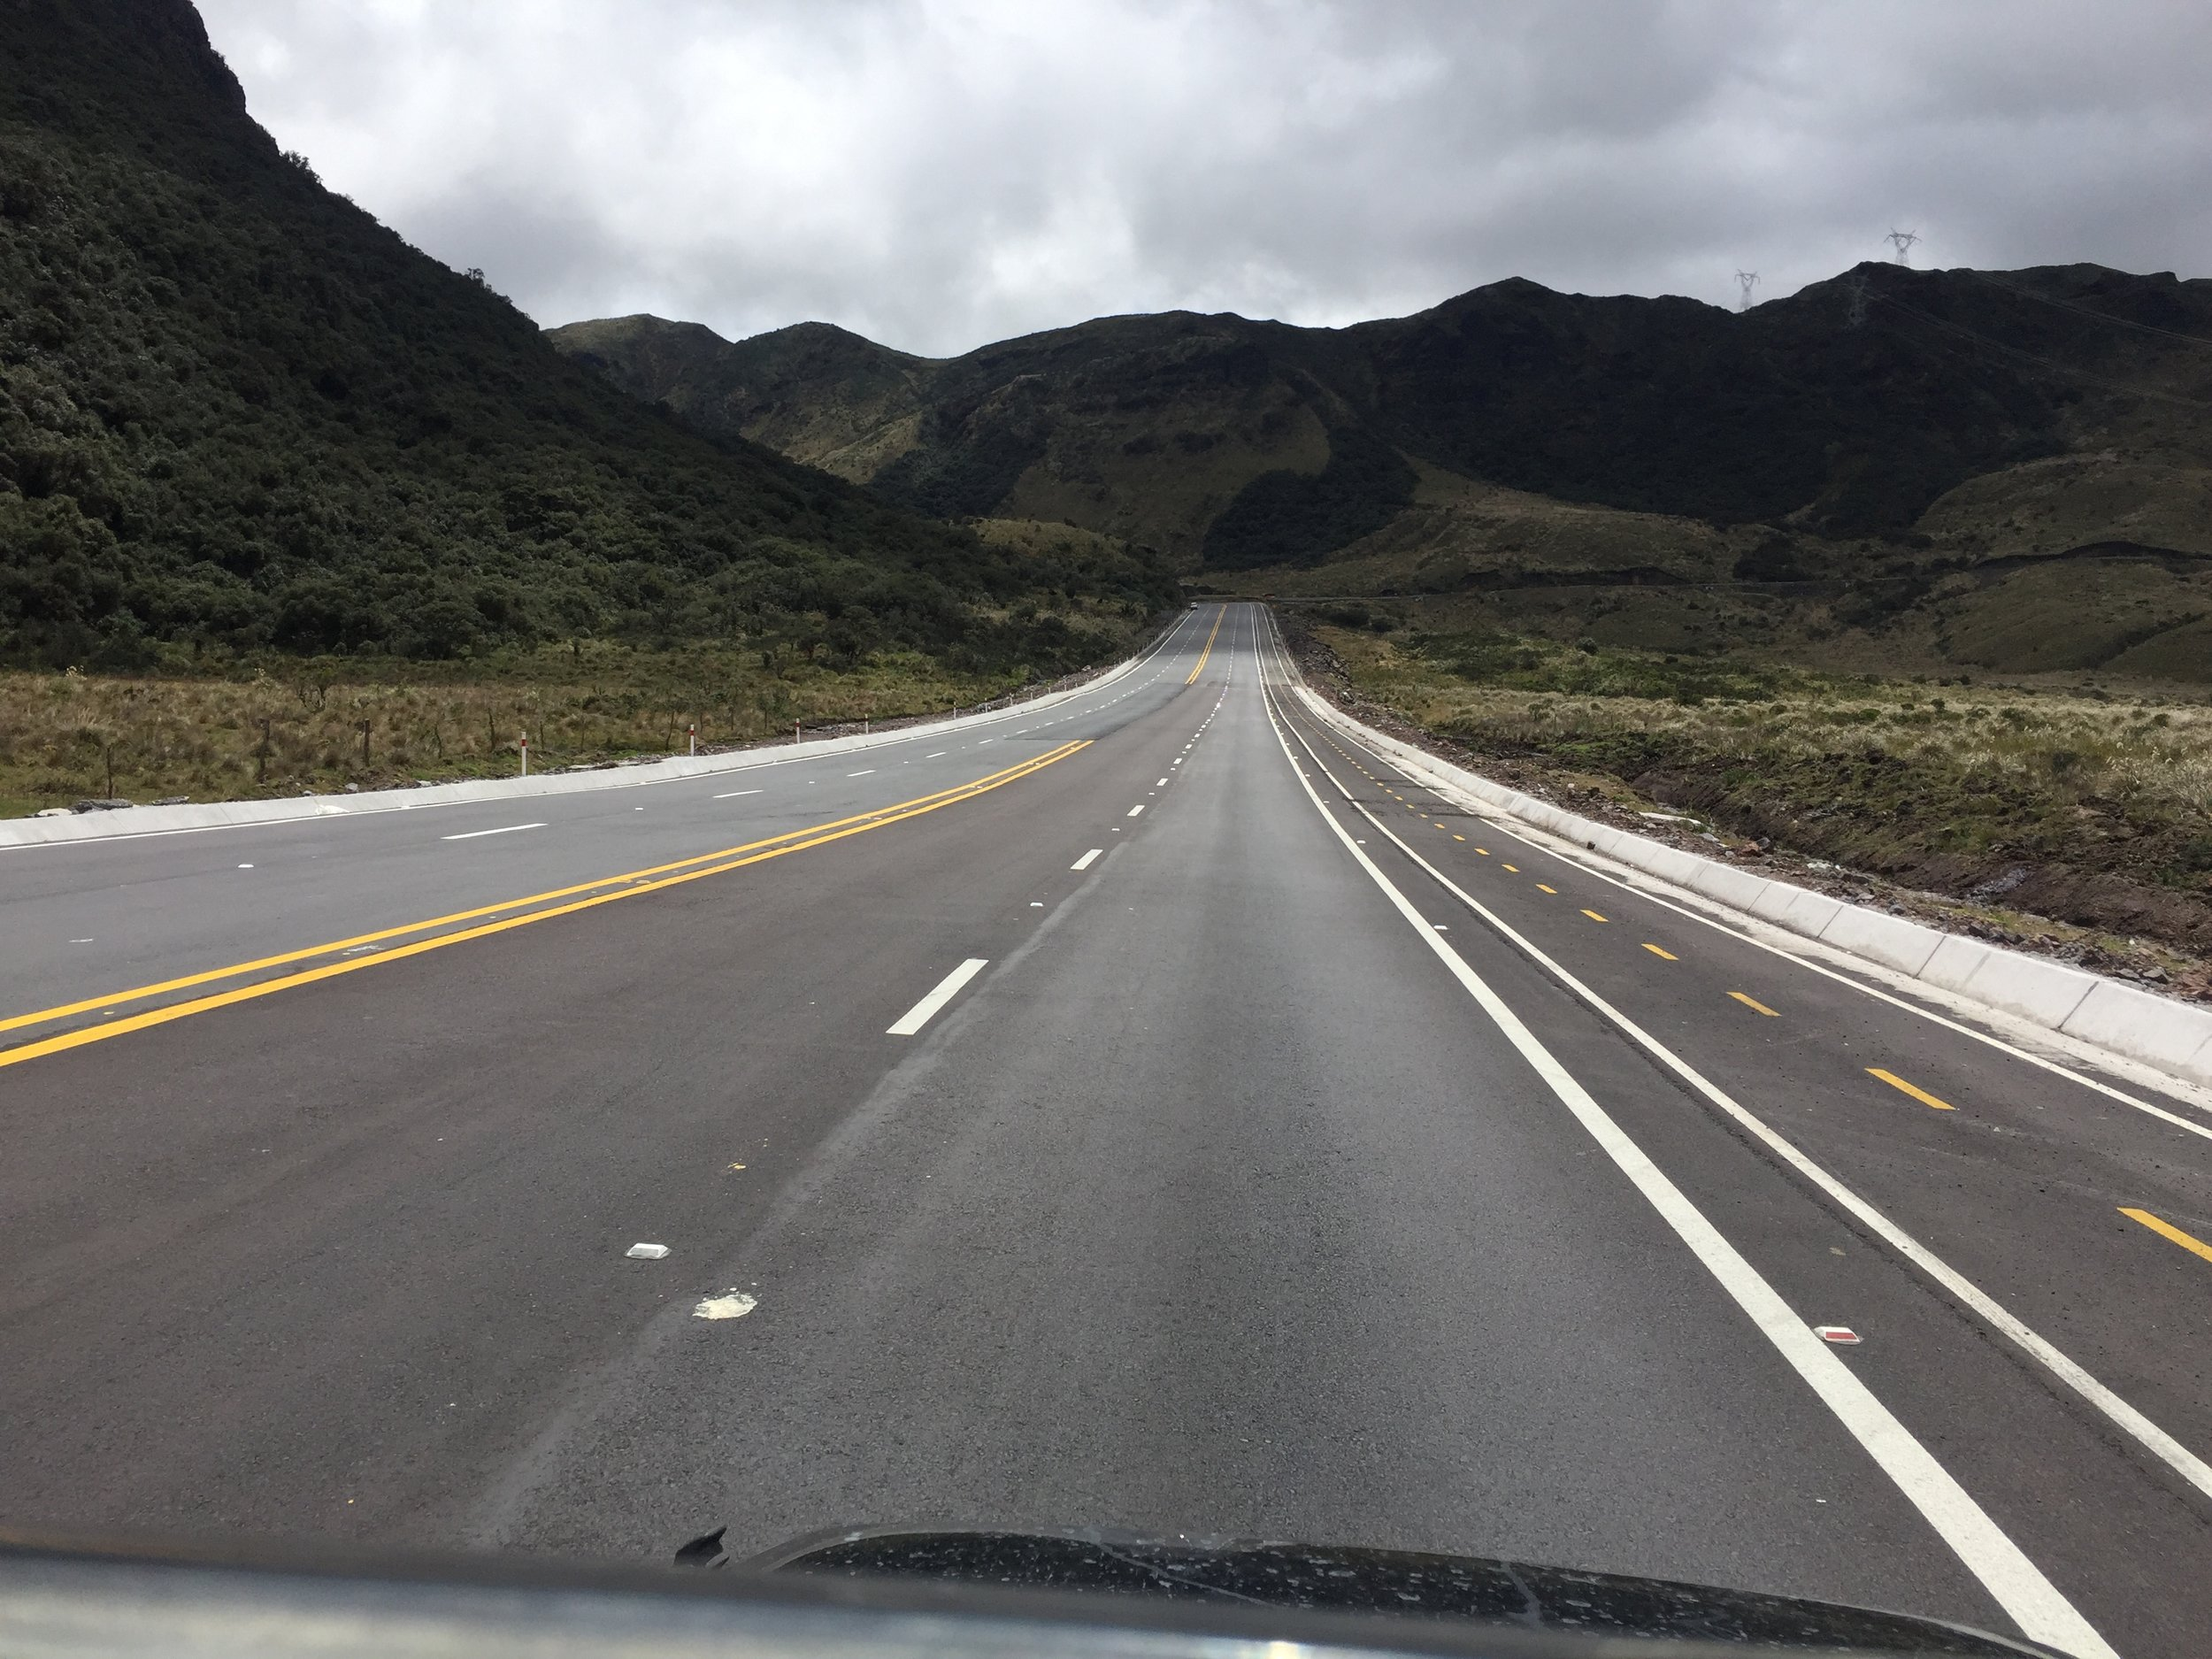 ECUADOR! The nicest roads of the whole panamerican roadtrip are in Ecuador. The Chinese built it. China is more or less imposing themselves in Ecuador.